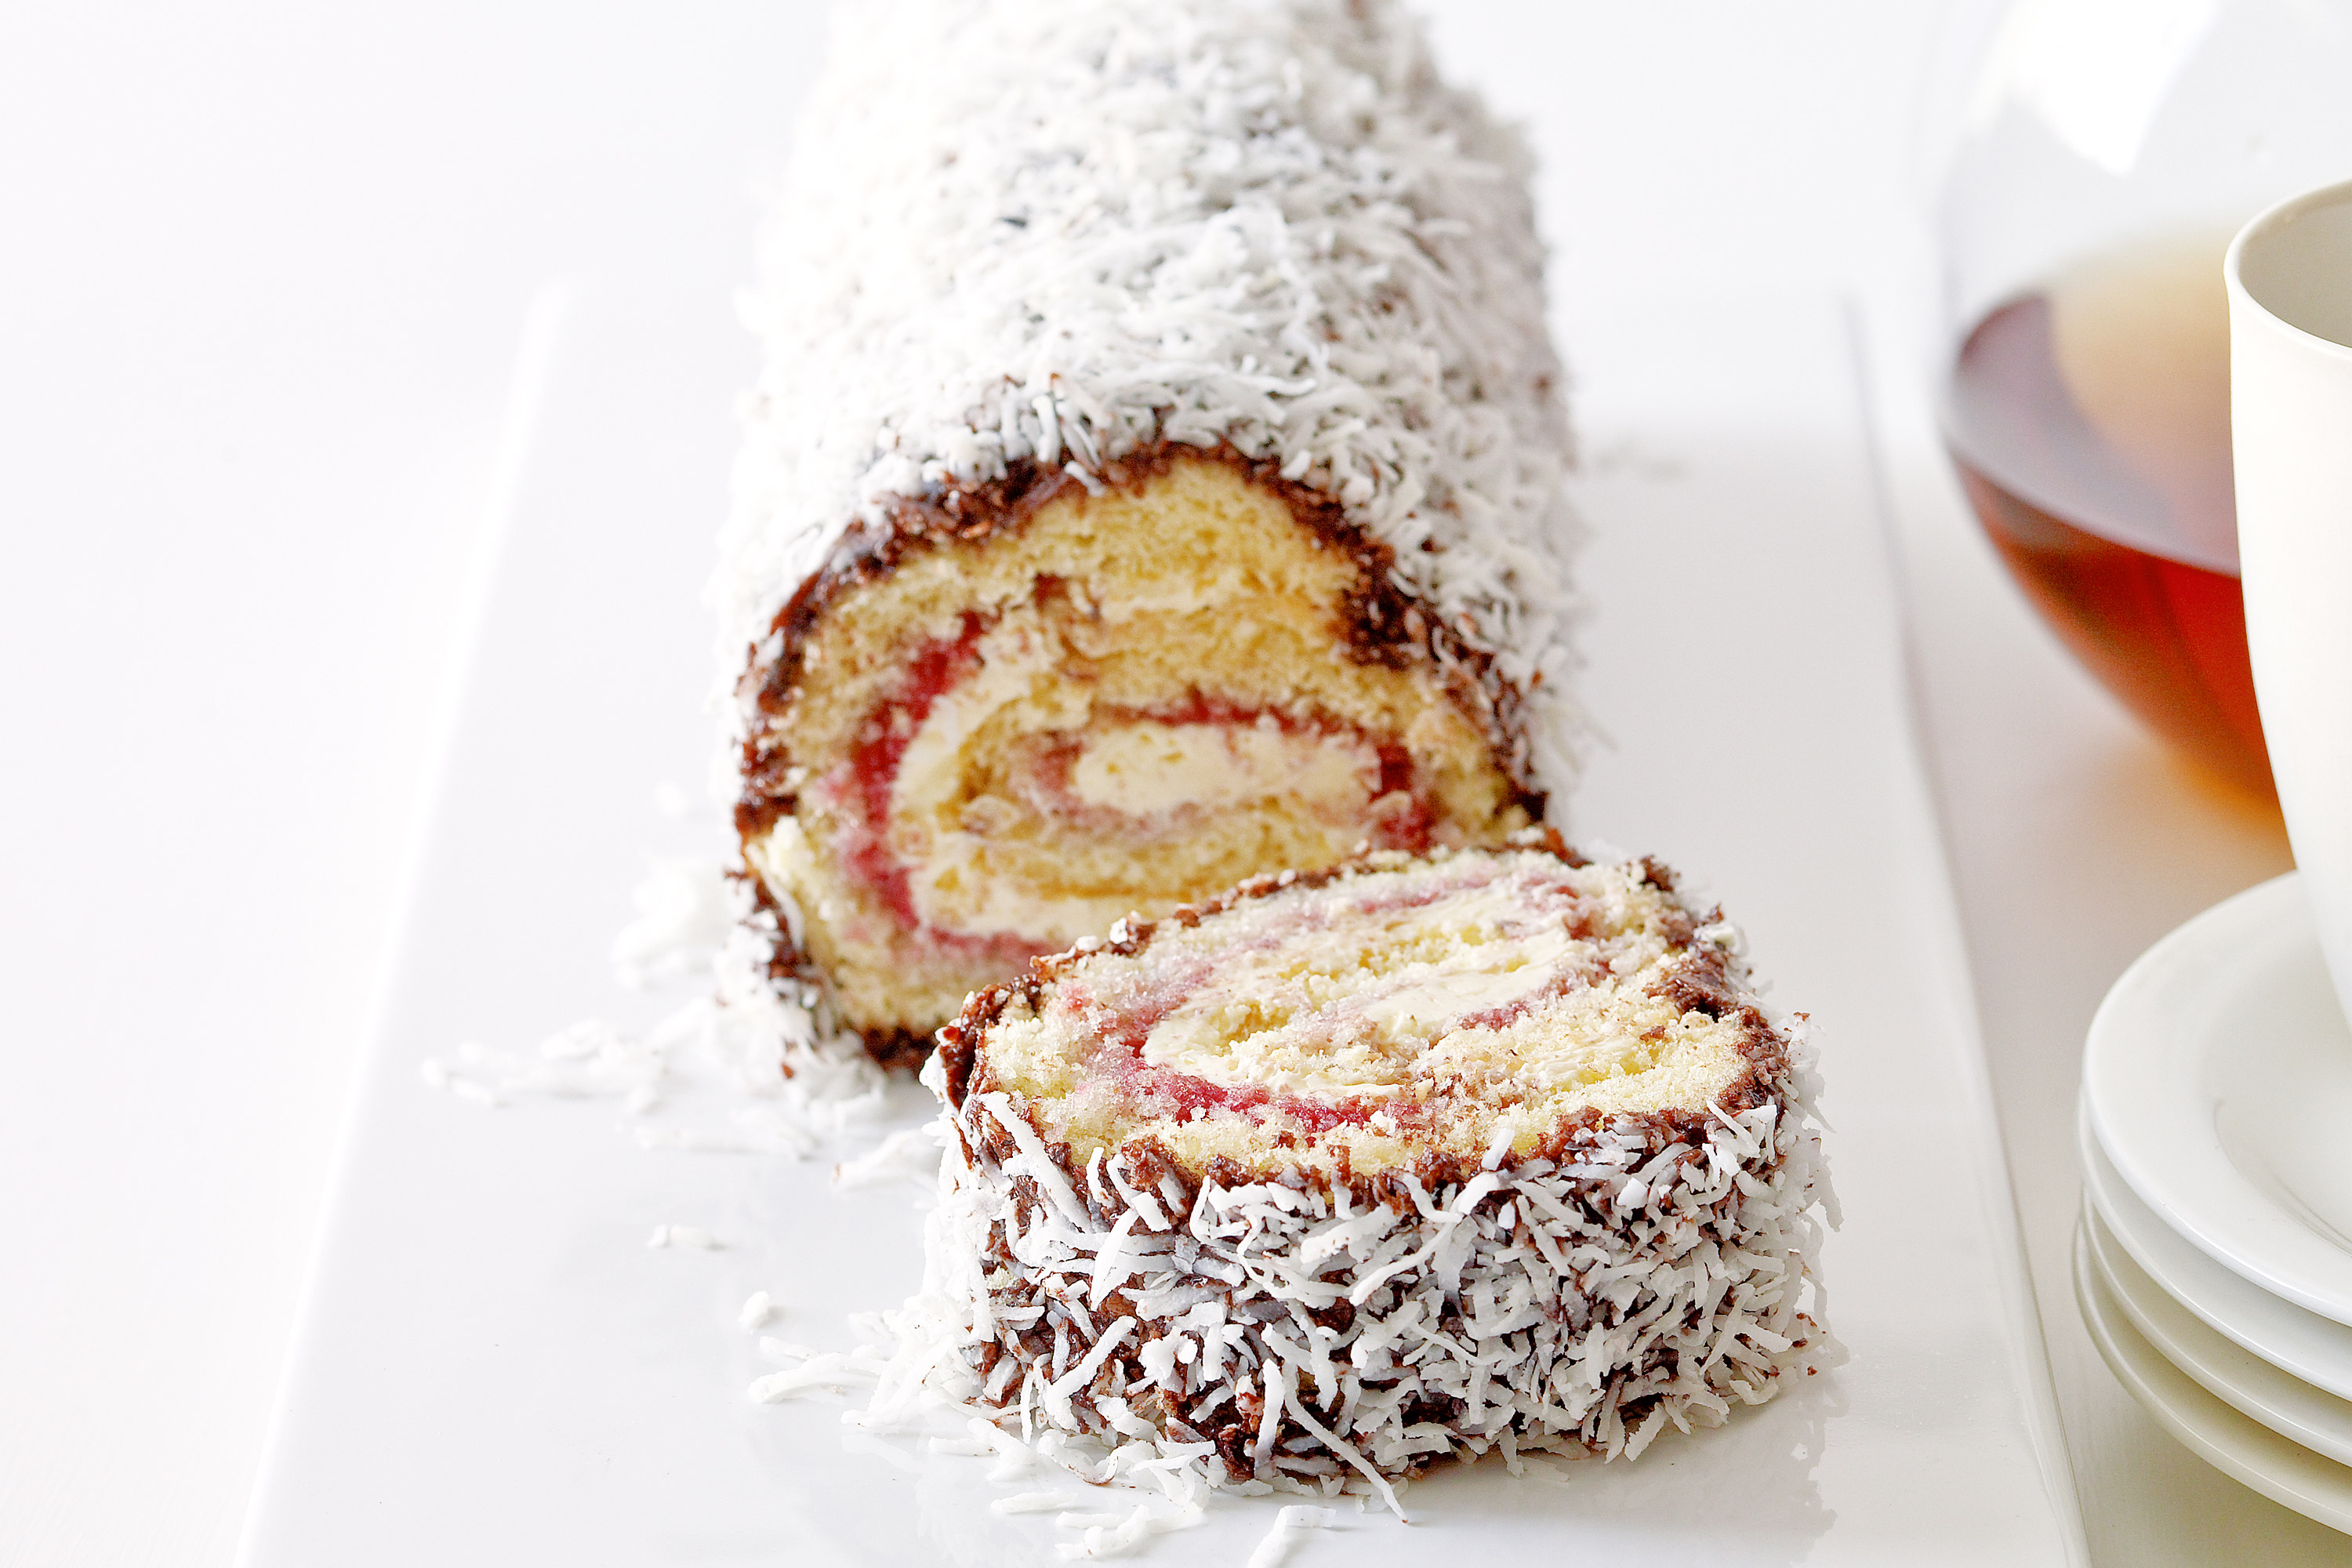 Cheats lamingtons recipe super easy easy and aussie food forumfinder Images